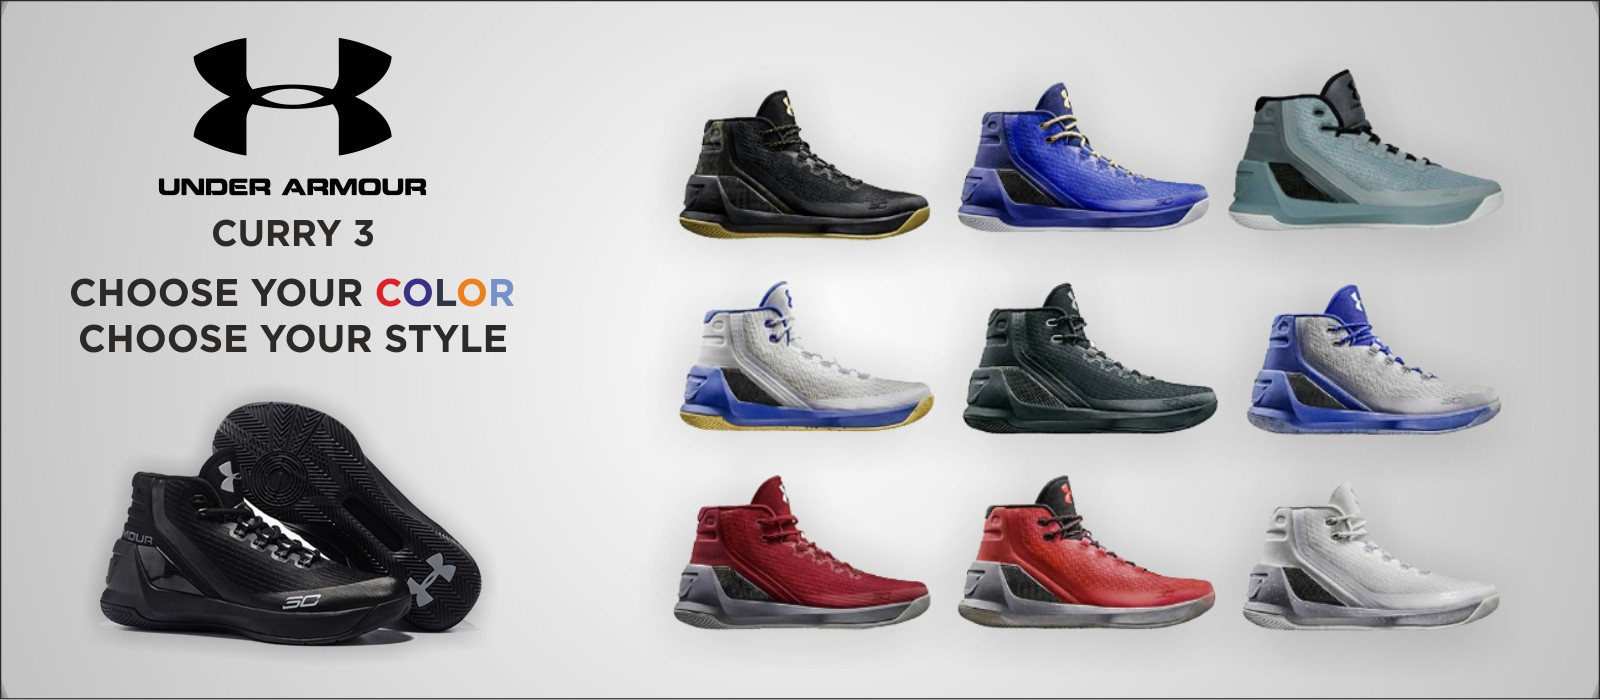 UNDER ARMOUR CURRY 3 - choose your colour